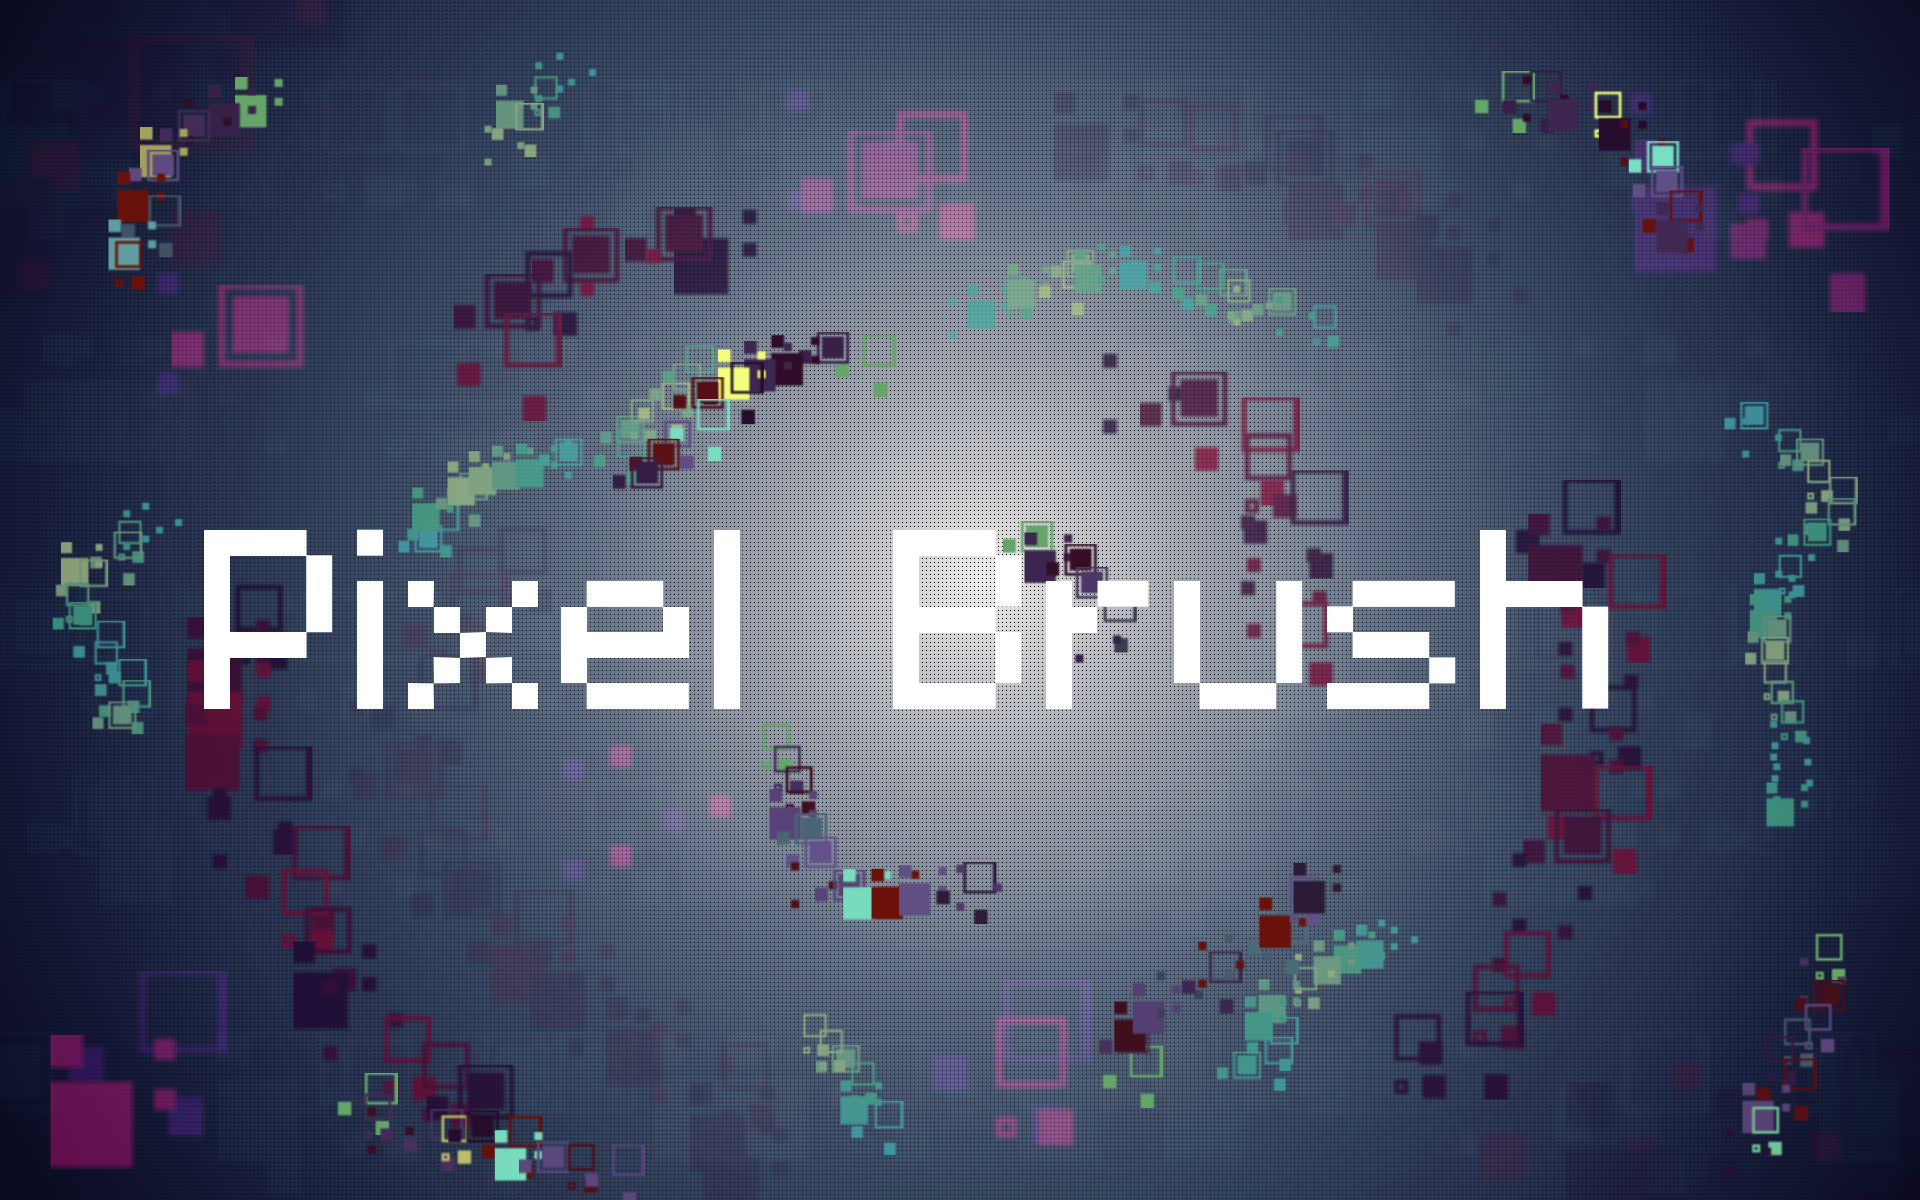 Tutorial. How to load new brushes in Adobe